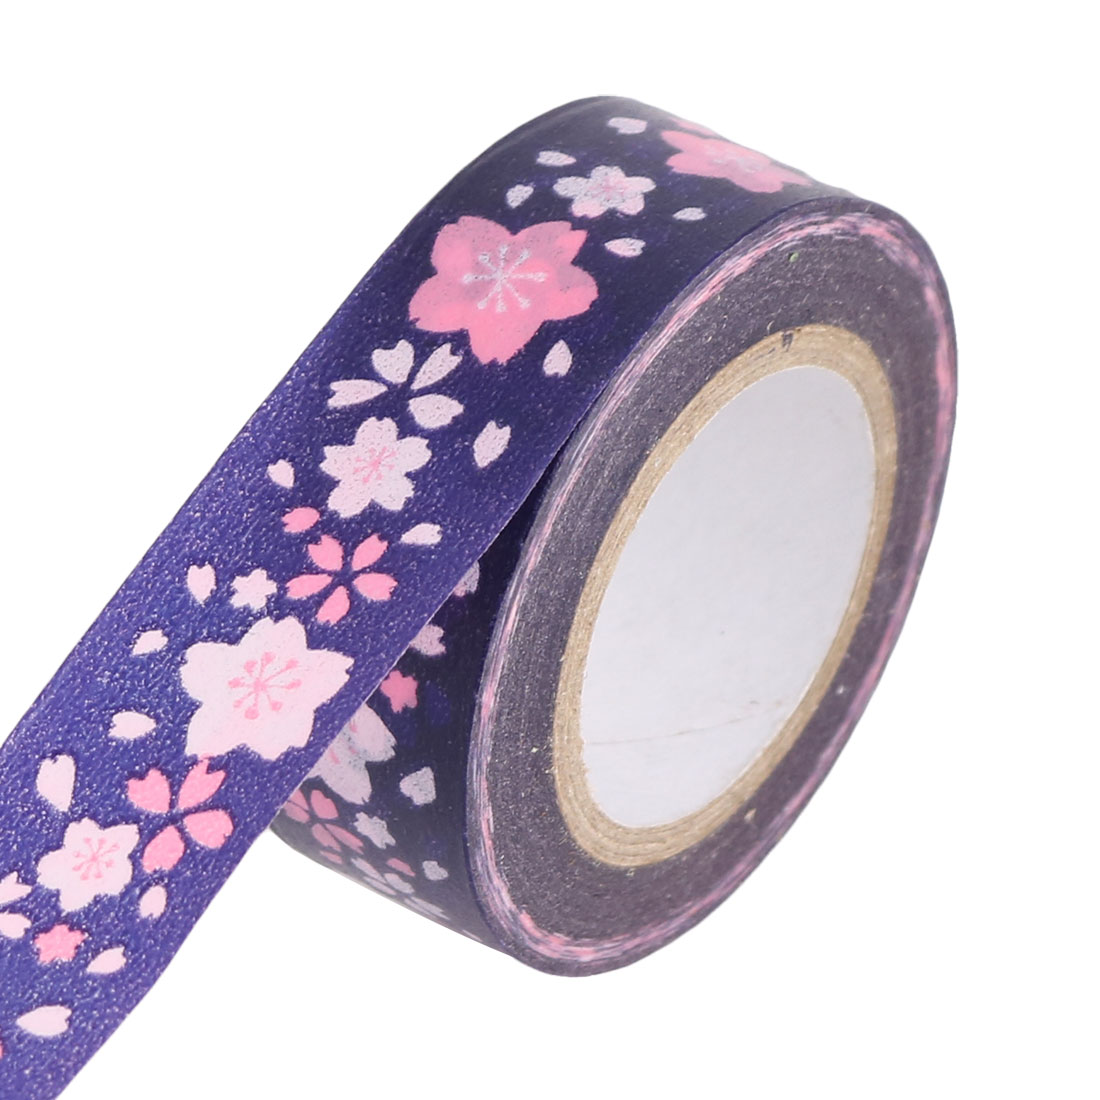 Flower Pattern DIY Scrapbooking Craft Decorative Washi Masking Tape Roll